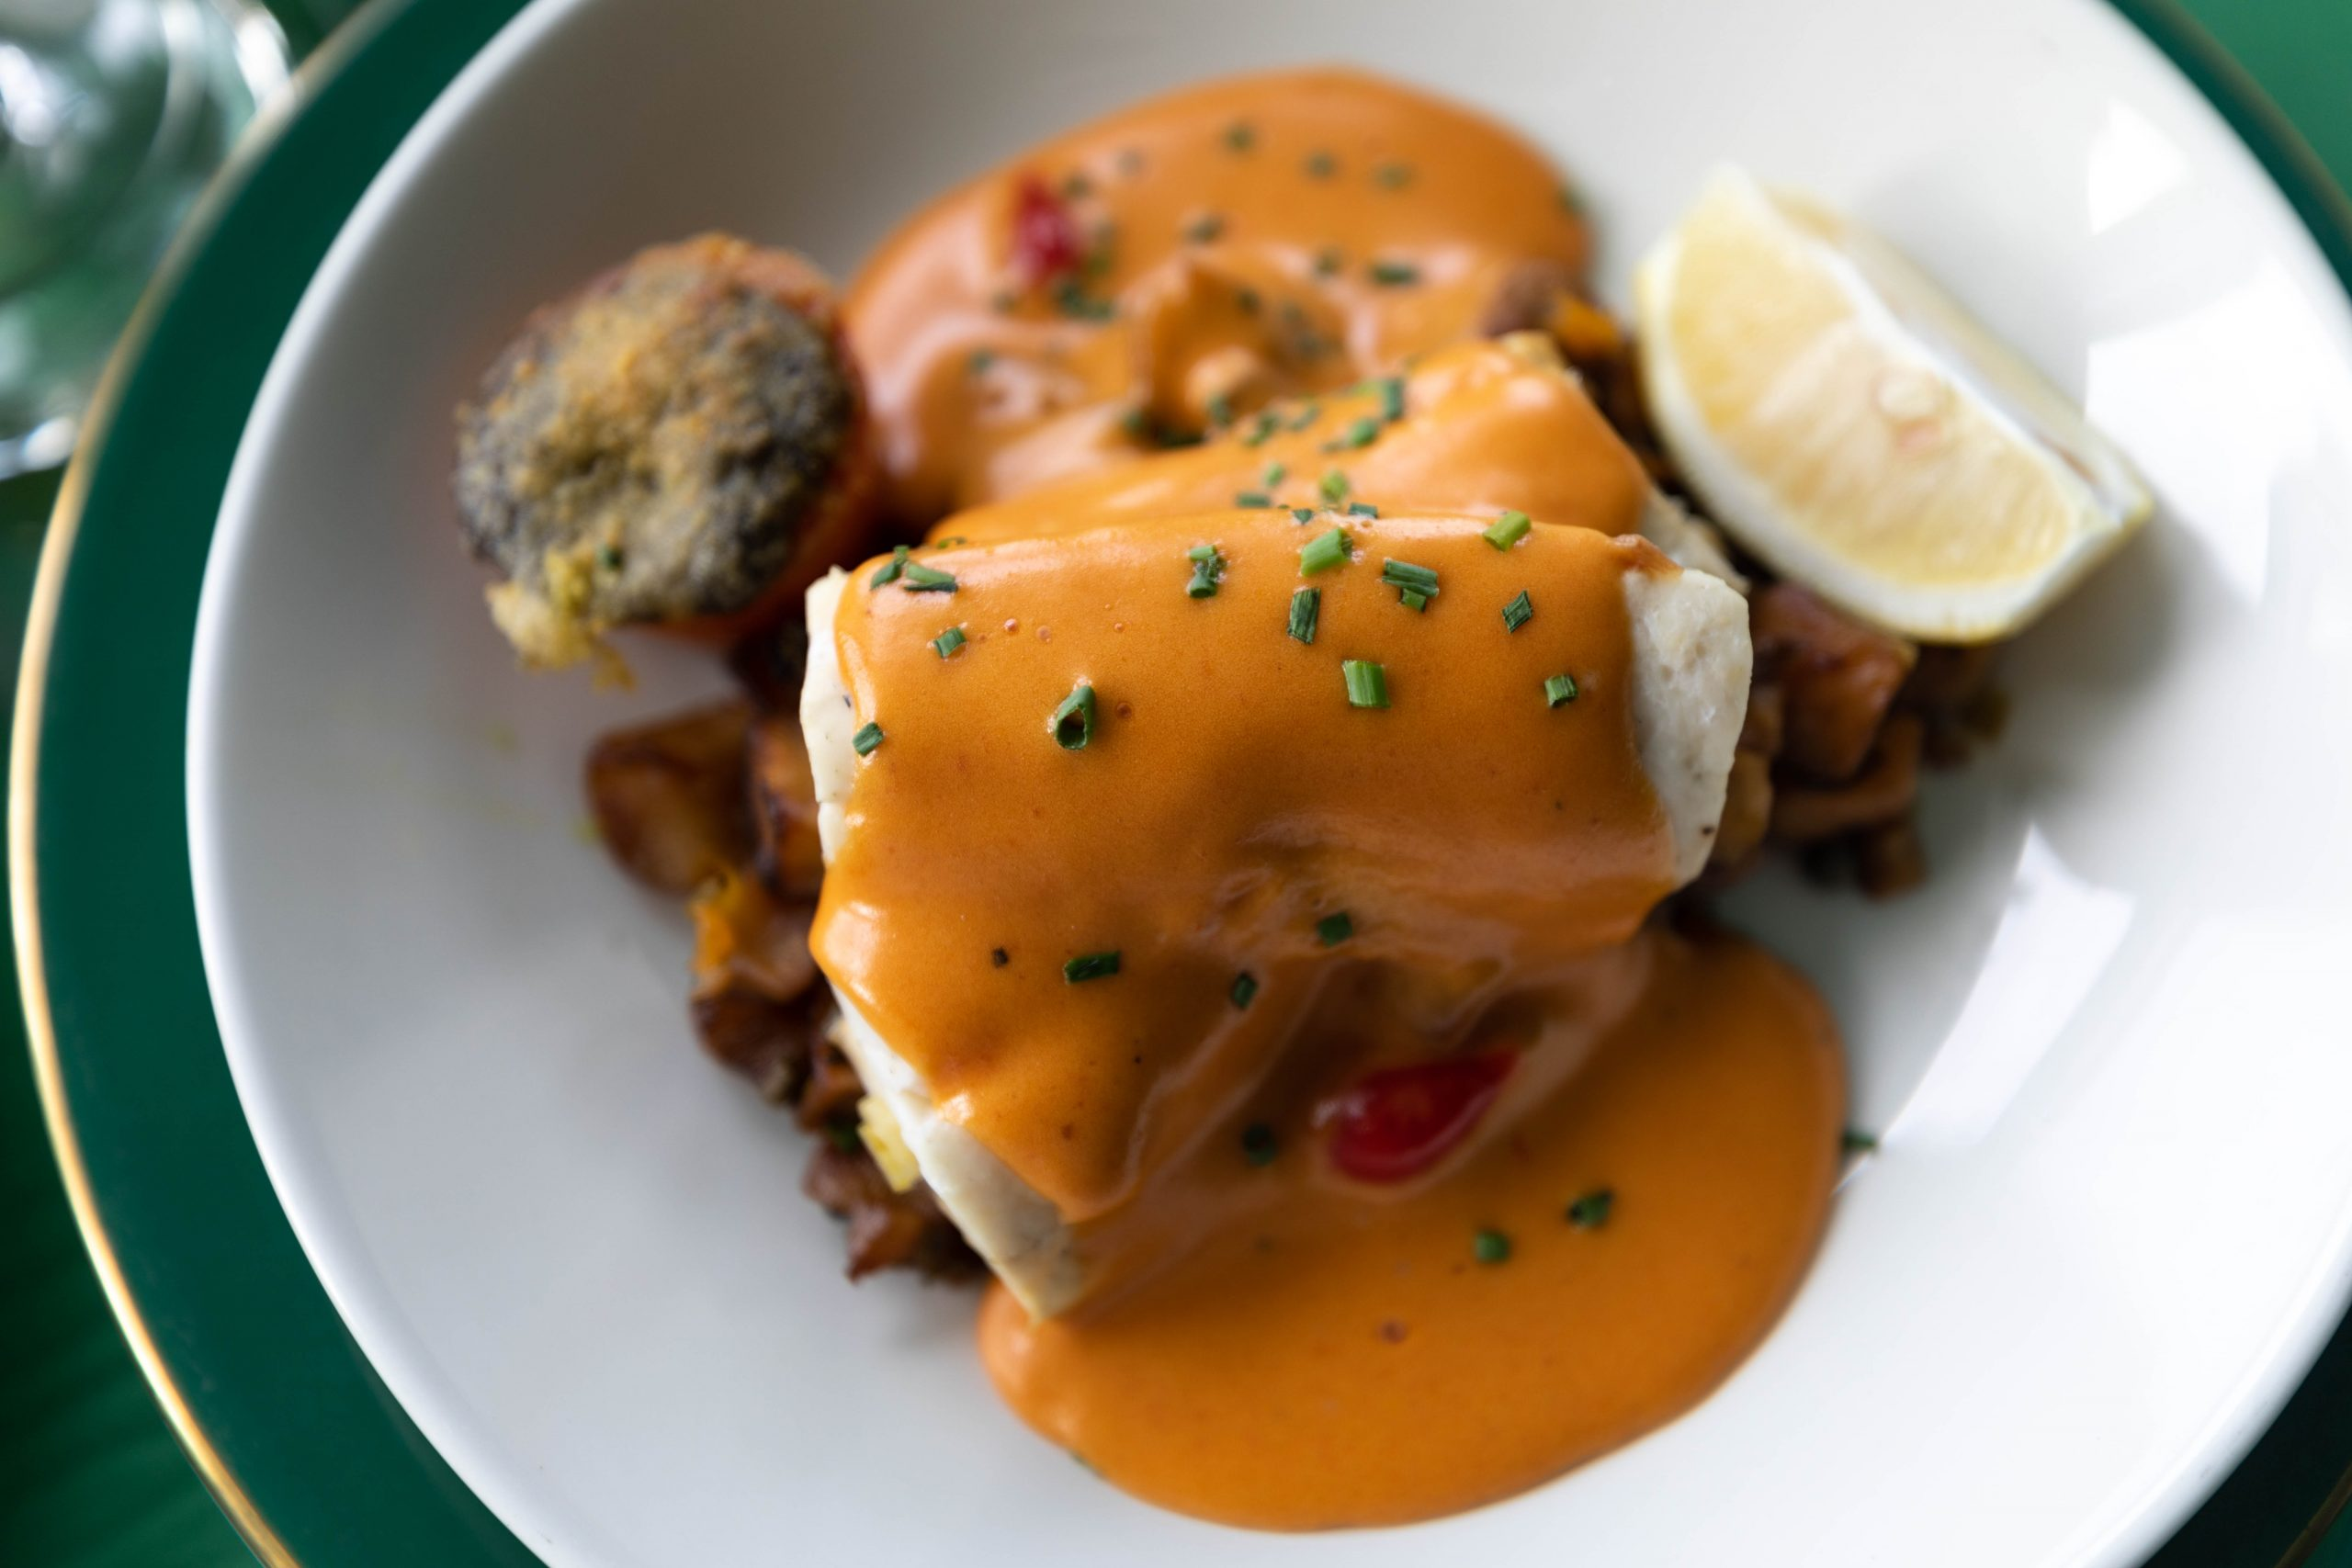 Lake Superior Wild Caught Walleye with a Tomato Hollandaise Sauce at Grand Hotel Mackinac Island by Annie Fairfax